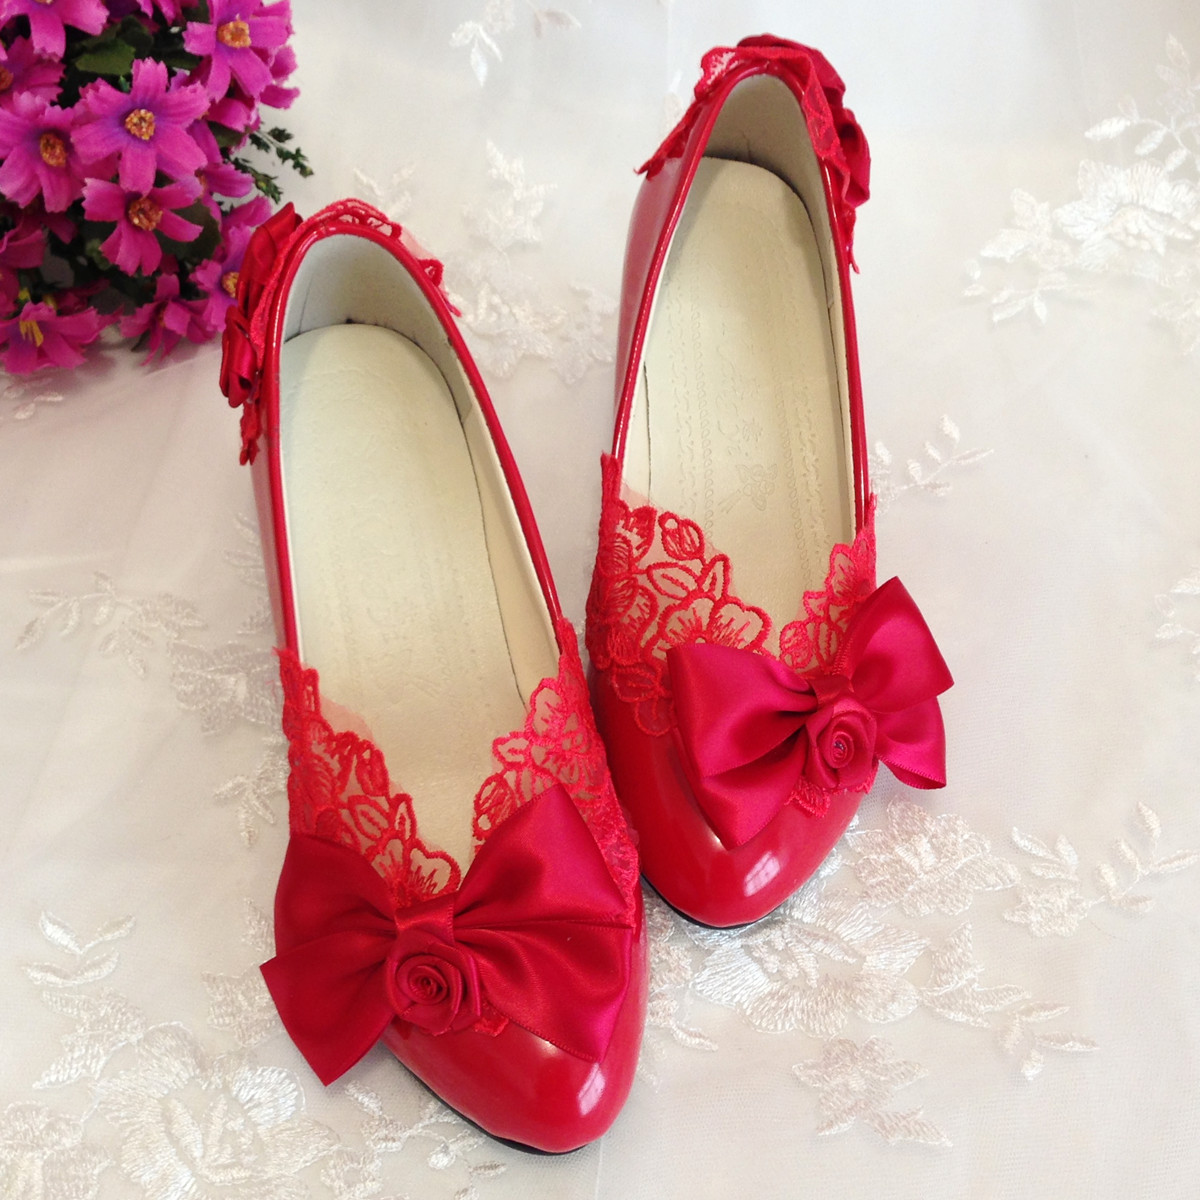 women Wedding shoes red crystal lace bow married bridal handmade bow rose formal dress shoes<br><br>Aliexpress